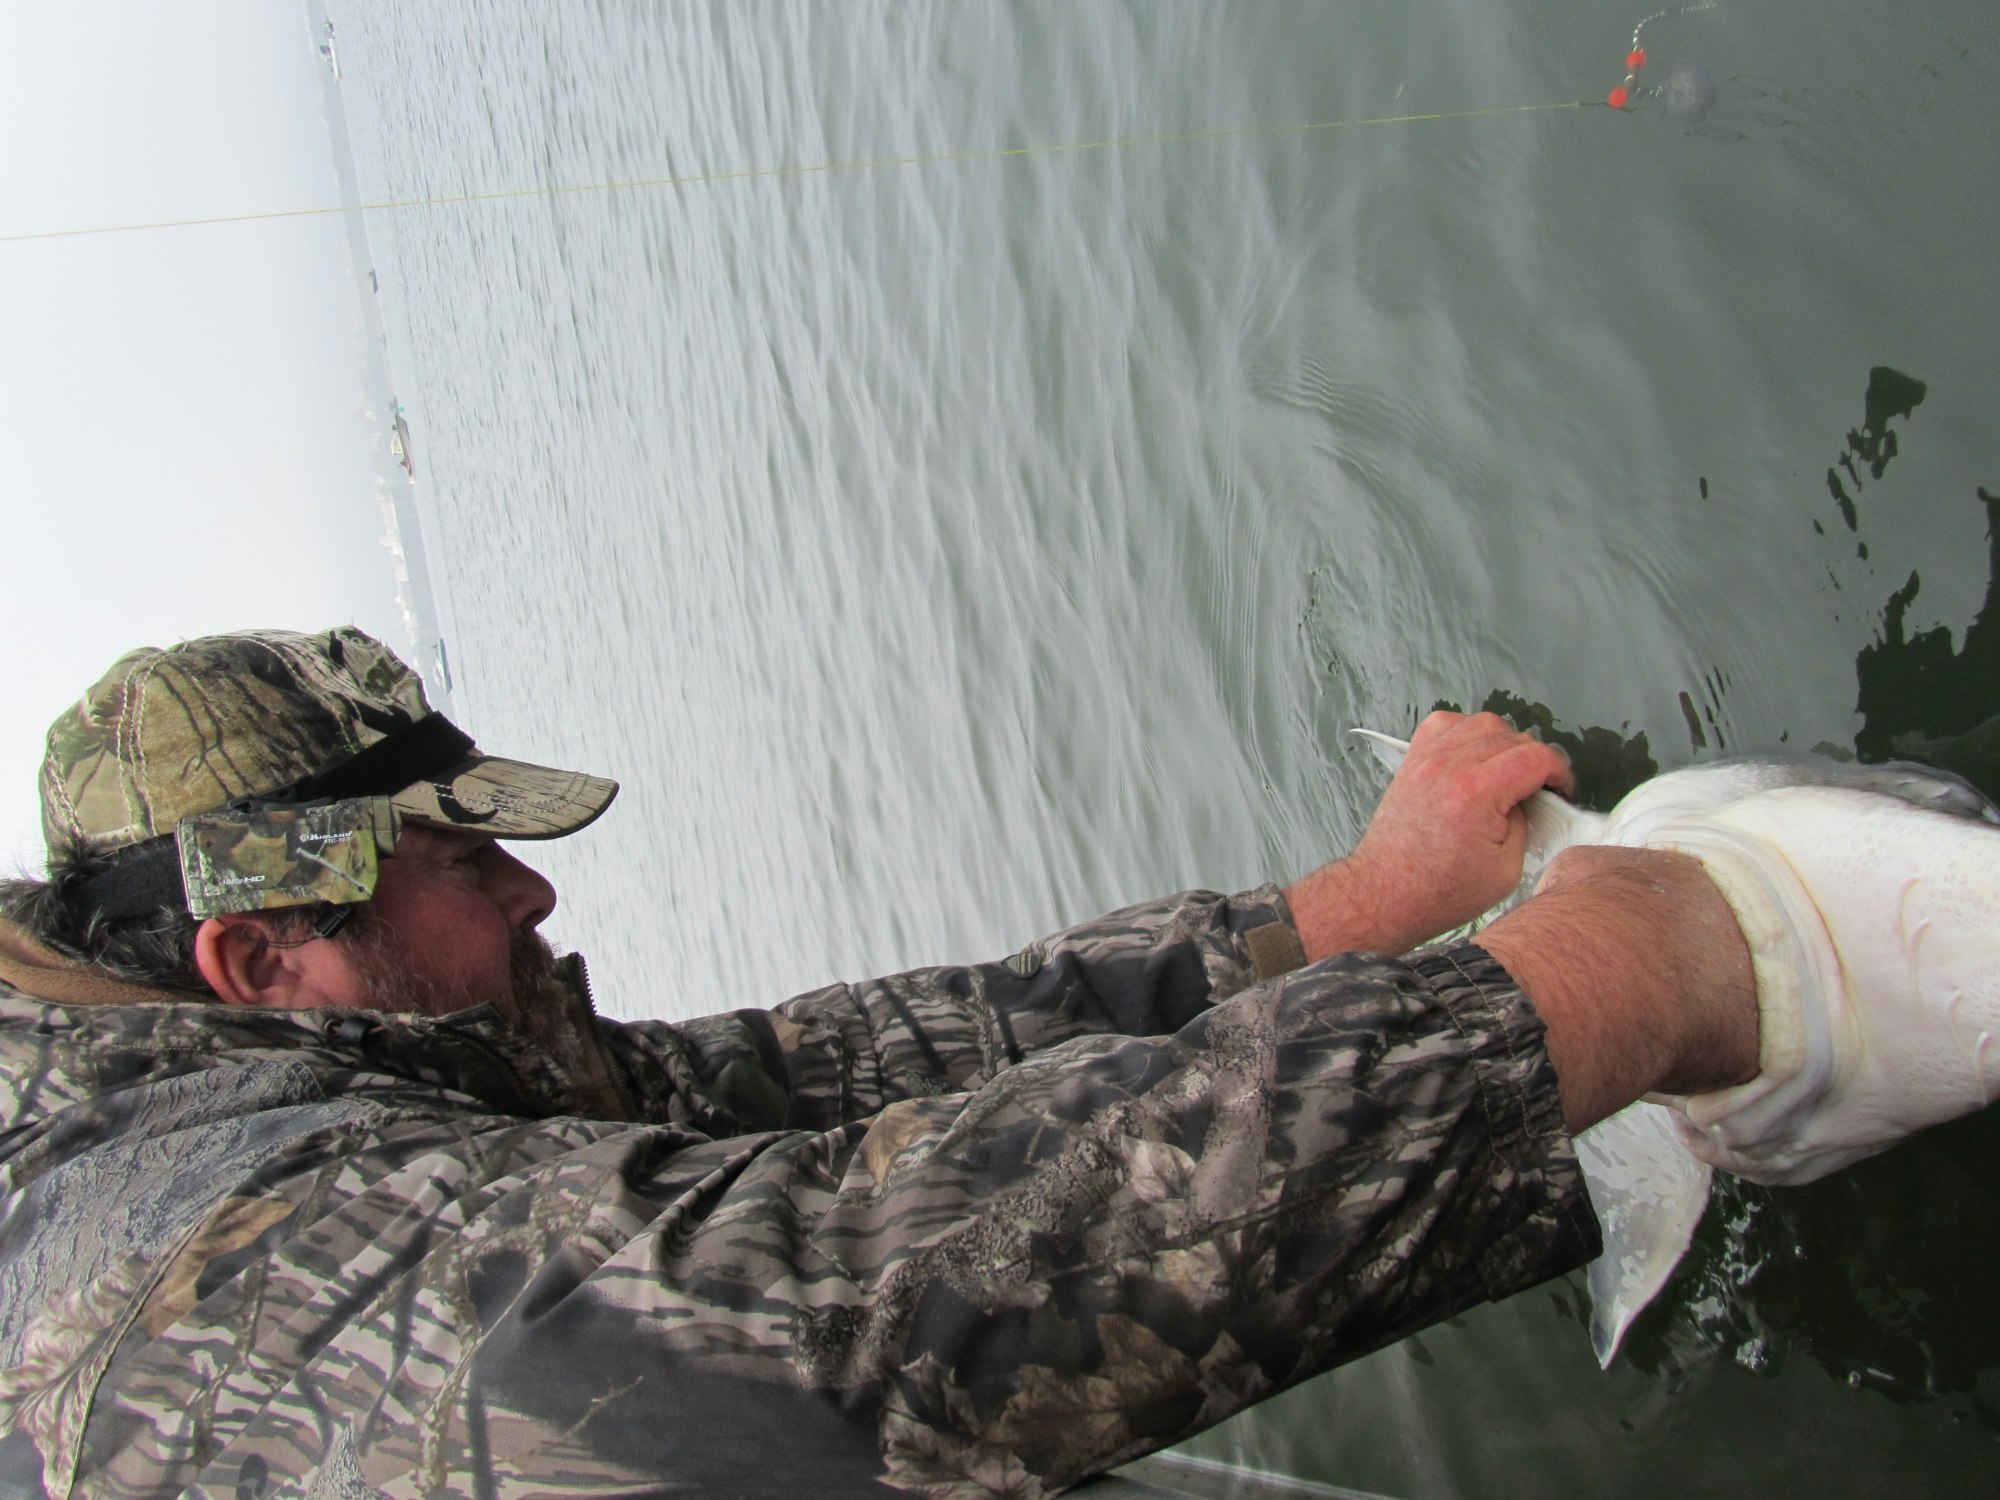 Angler Brad Halleck Fish of the Week October 19, 2013